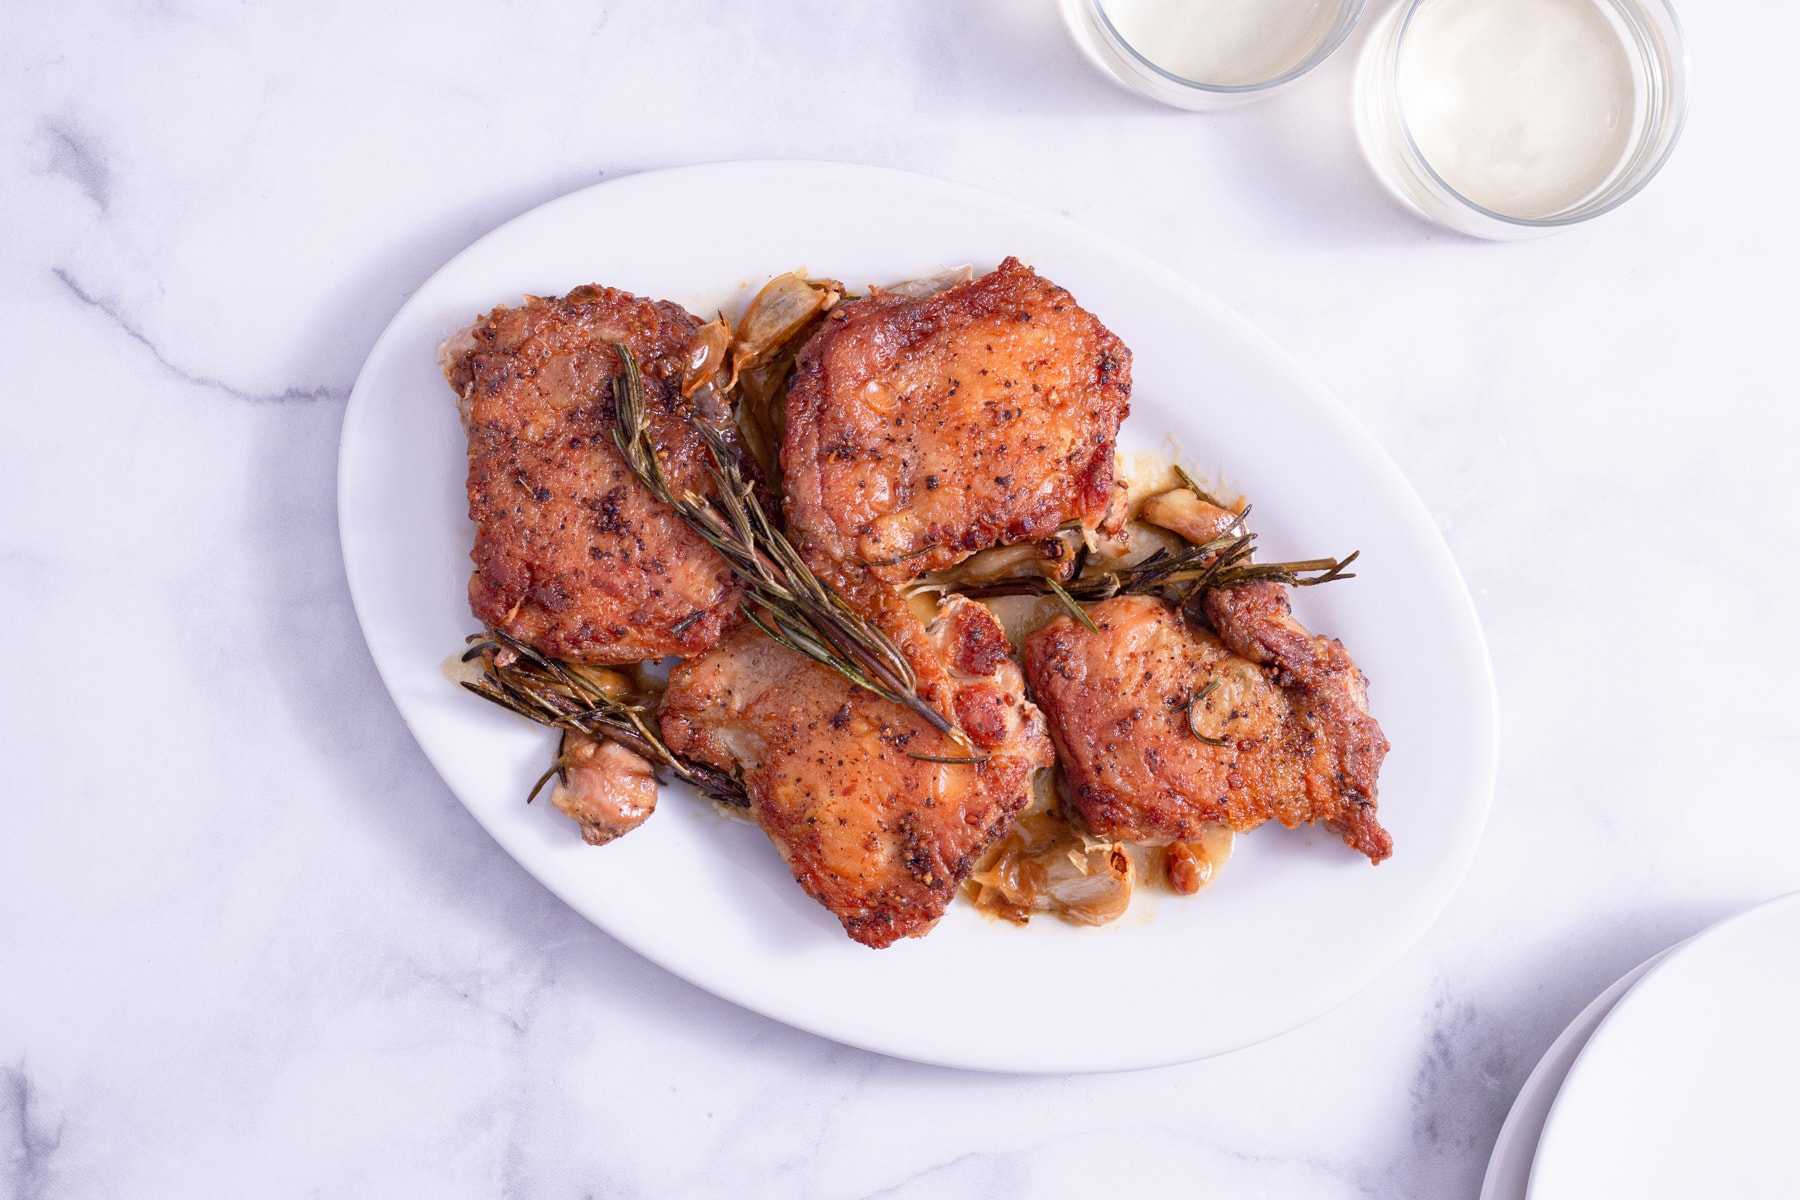 Overhead shot of a platter of Crispy Chicken Thighs with Rosemary and Garlic surrounded by glasses of wine and white plates on a marble surface.